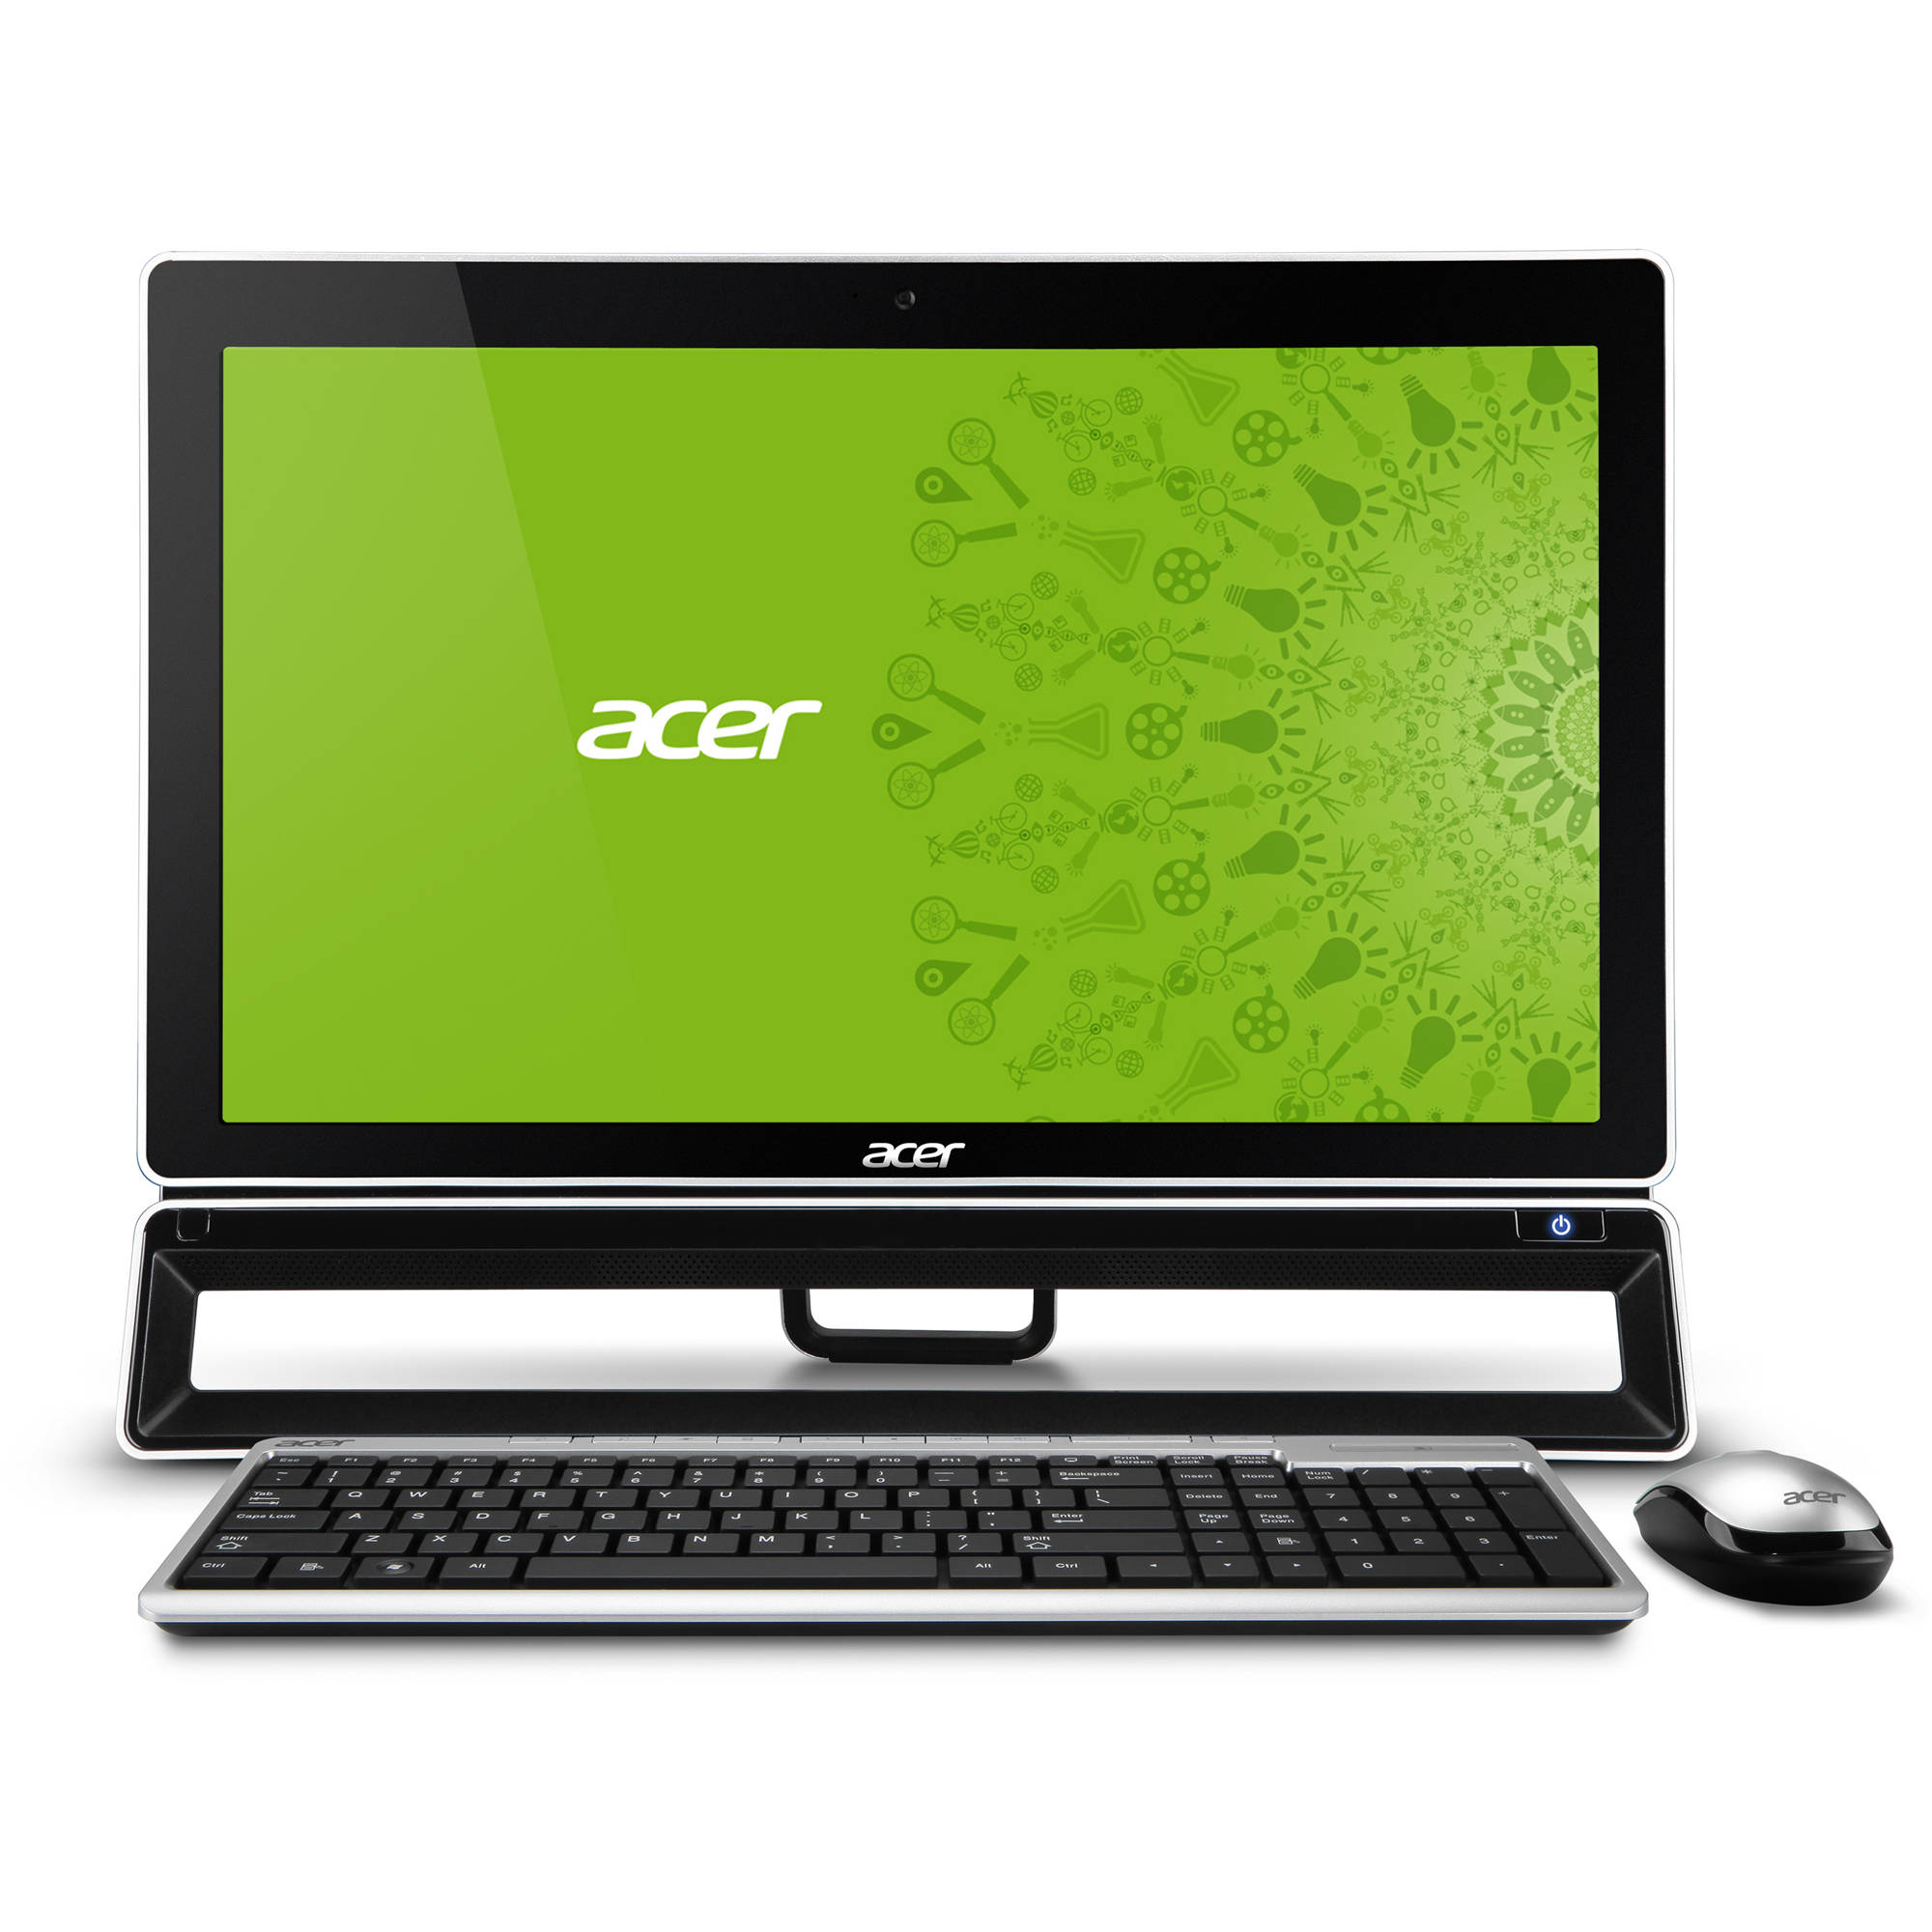 Acer Aspire 2020 Audio 64 Bit